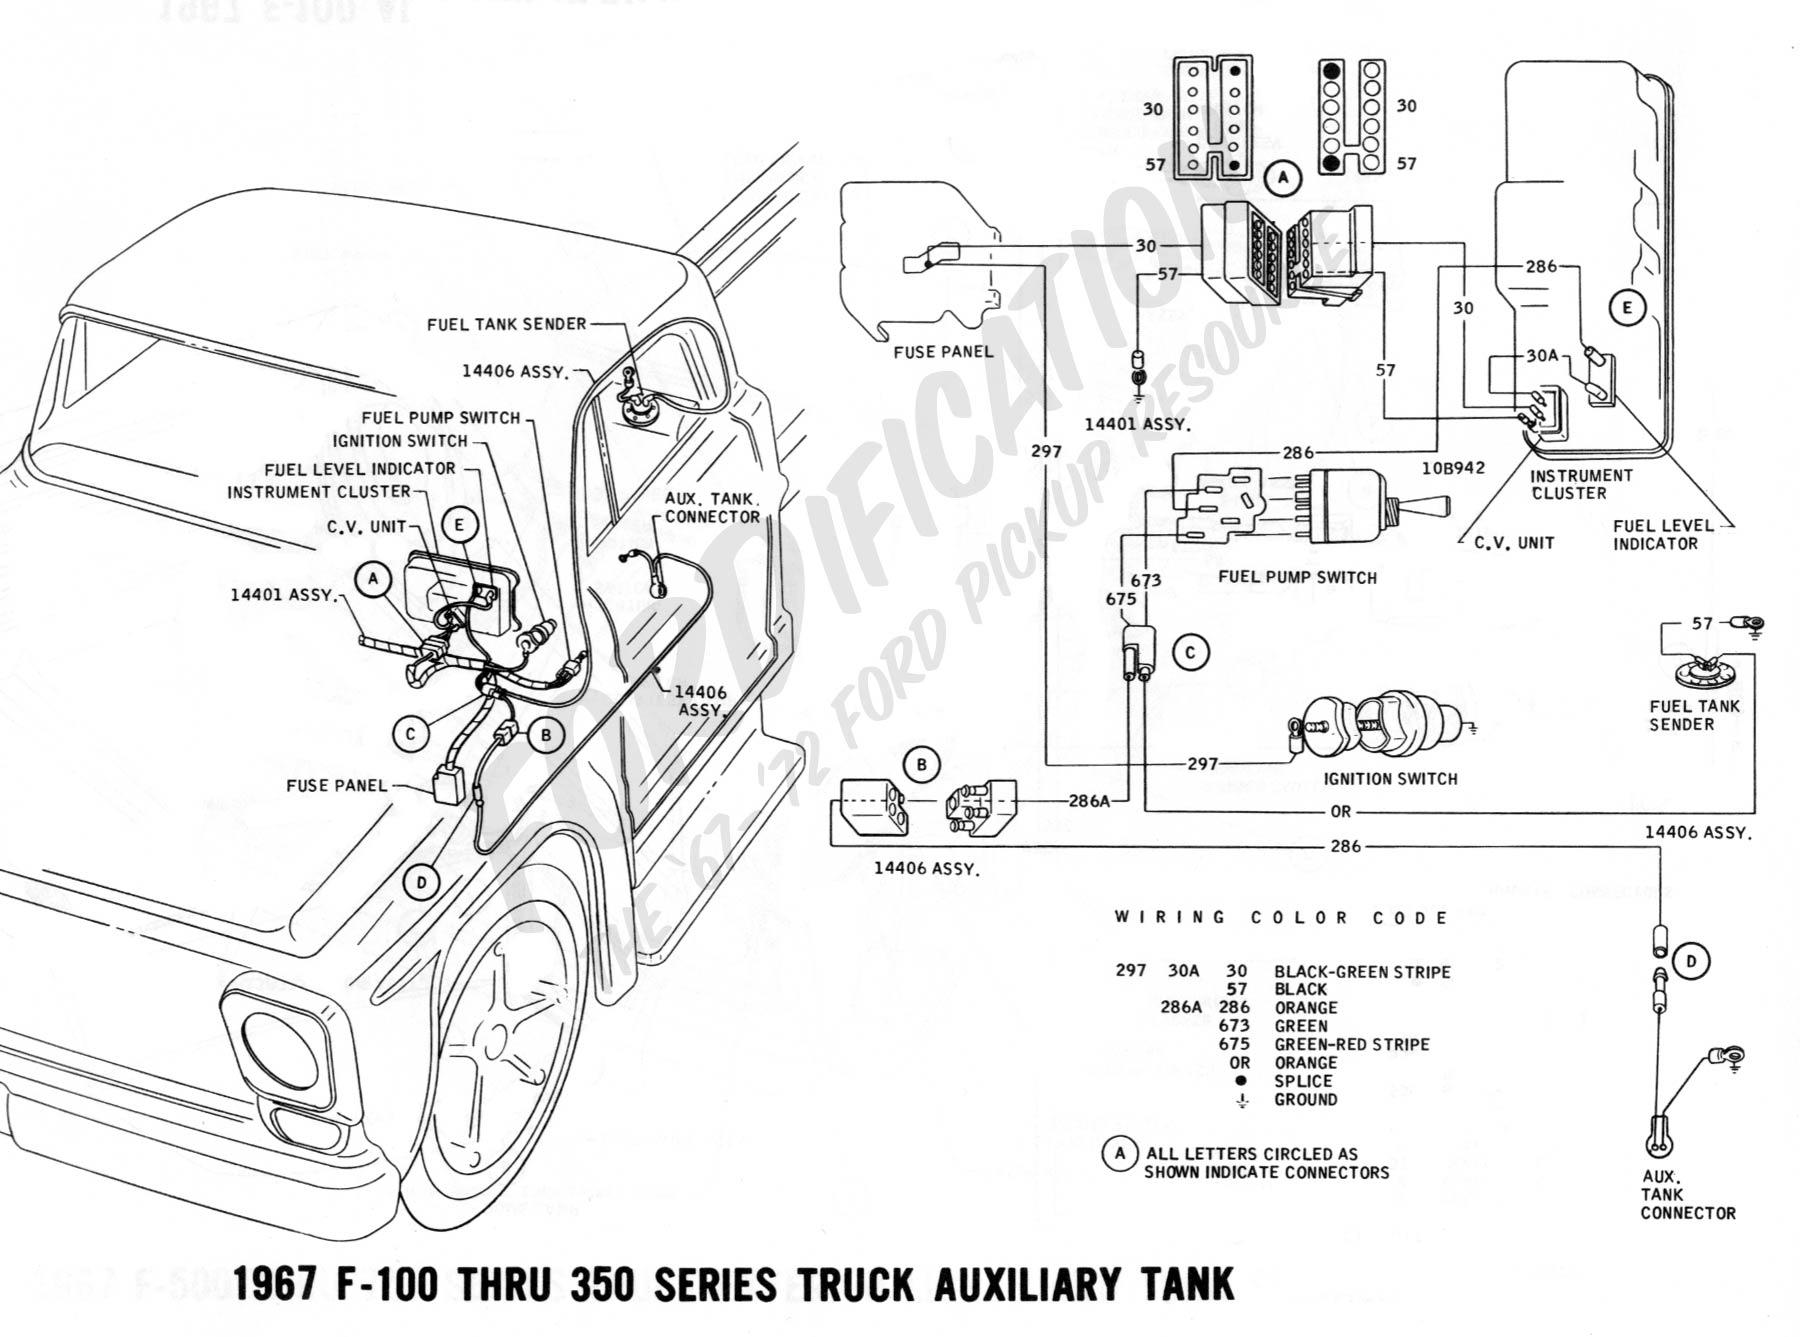 wiring 1967auxtank ford truck technical drawings and schematics section h wiring chevy dual fuel tank wiring diagram at soozxer.org